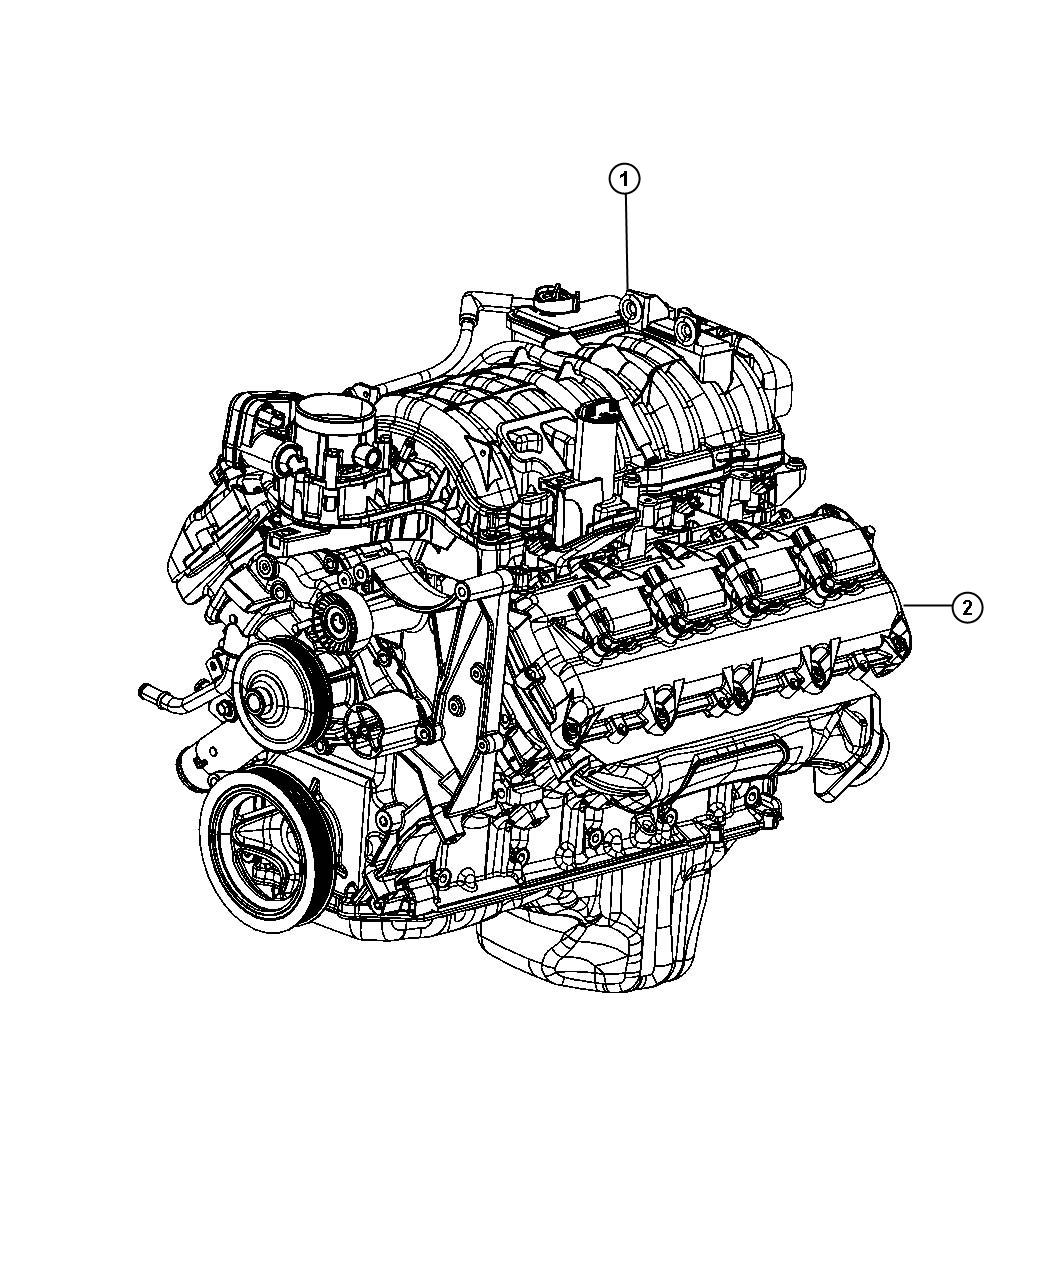 Dodge Ram 1500 Engine. Long block. Remanufactured. Mds